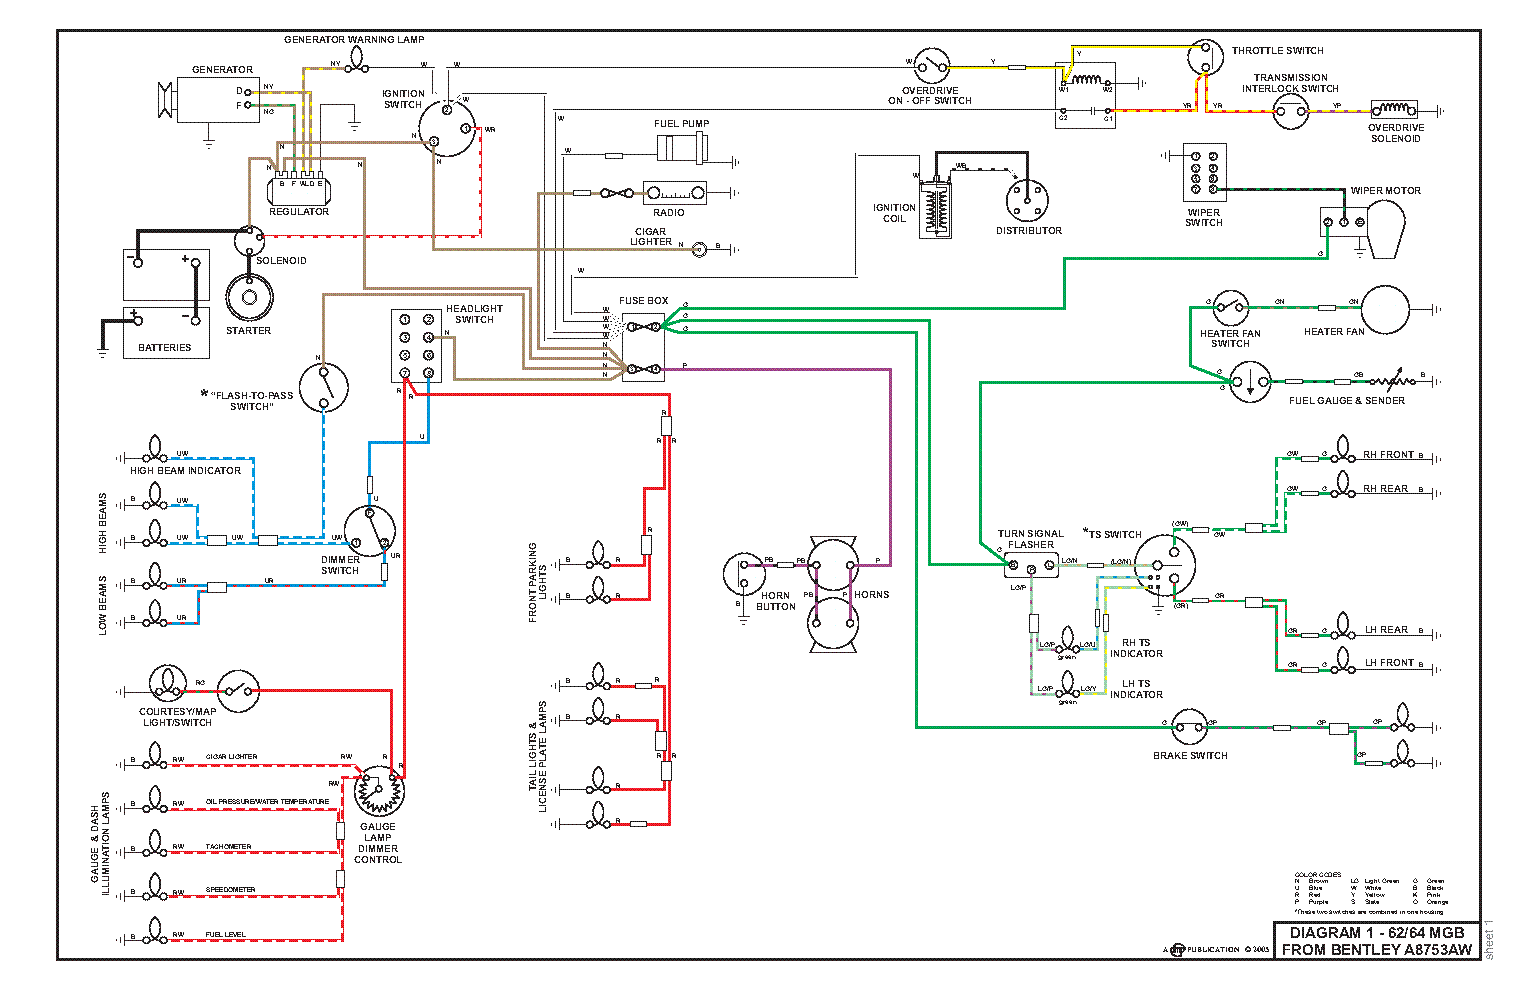 bentley_mg_b_car_wiring_diagrams.pdf_1 bentley radio wiring diagram bentley wiring diagrams instruction isuzu dmax wiring diagram pdf at panicattacktreatment.co